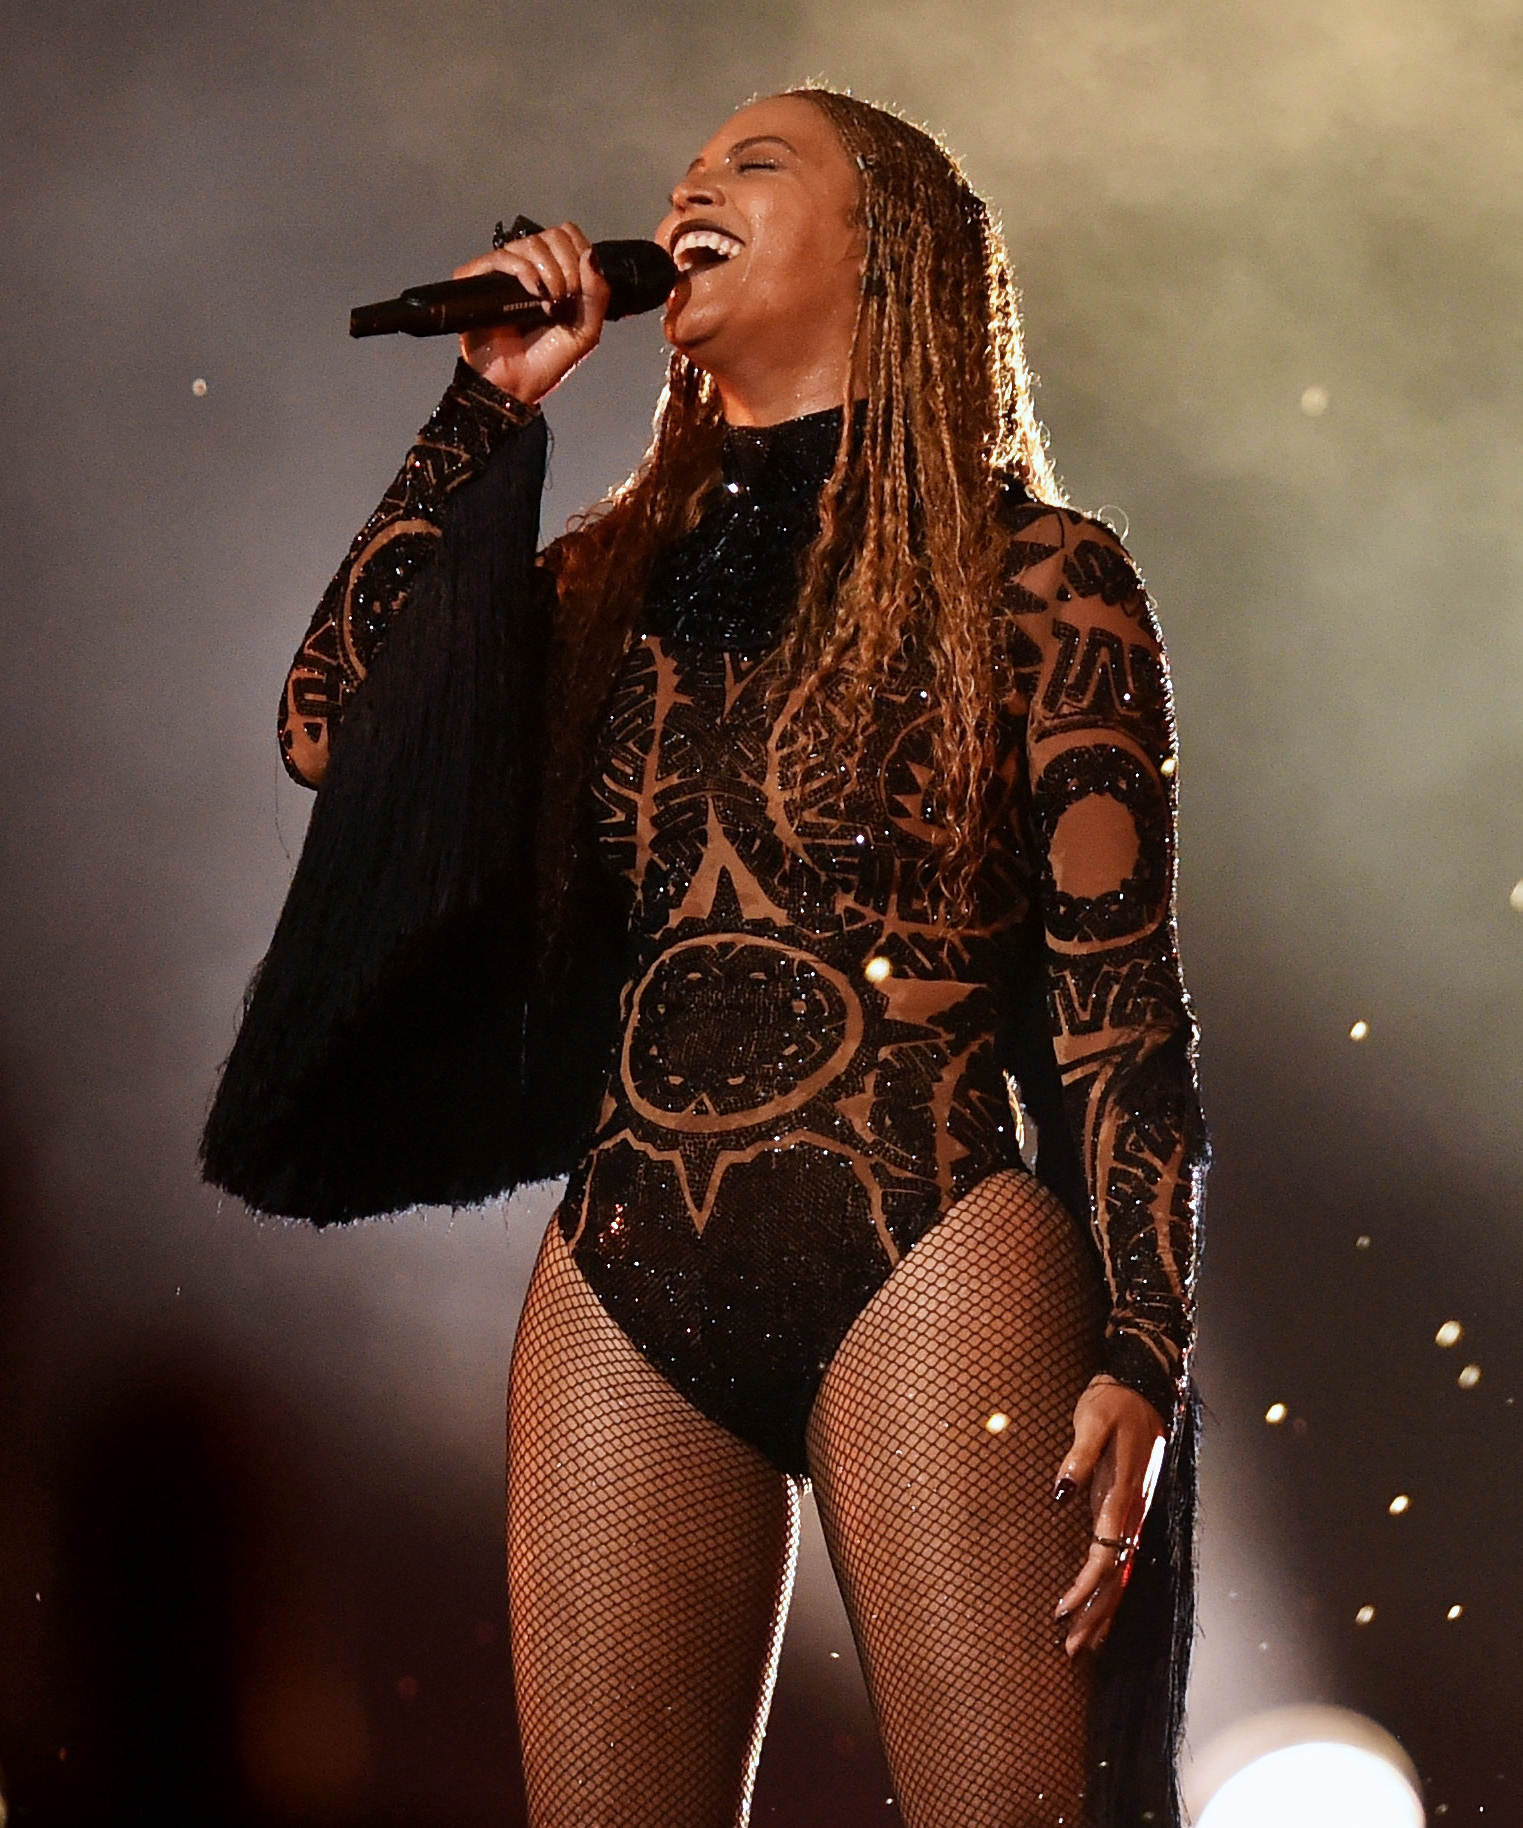 Beyoncé Just Tore Up the 2016 BET Awards with a Surprise Performance